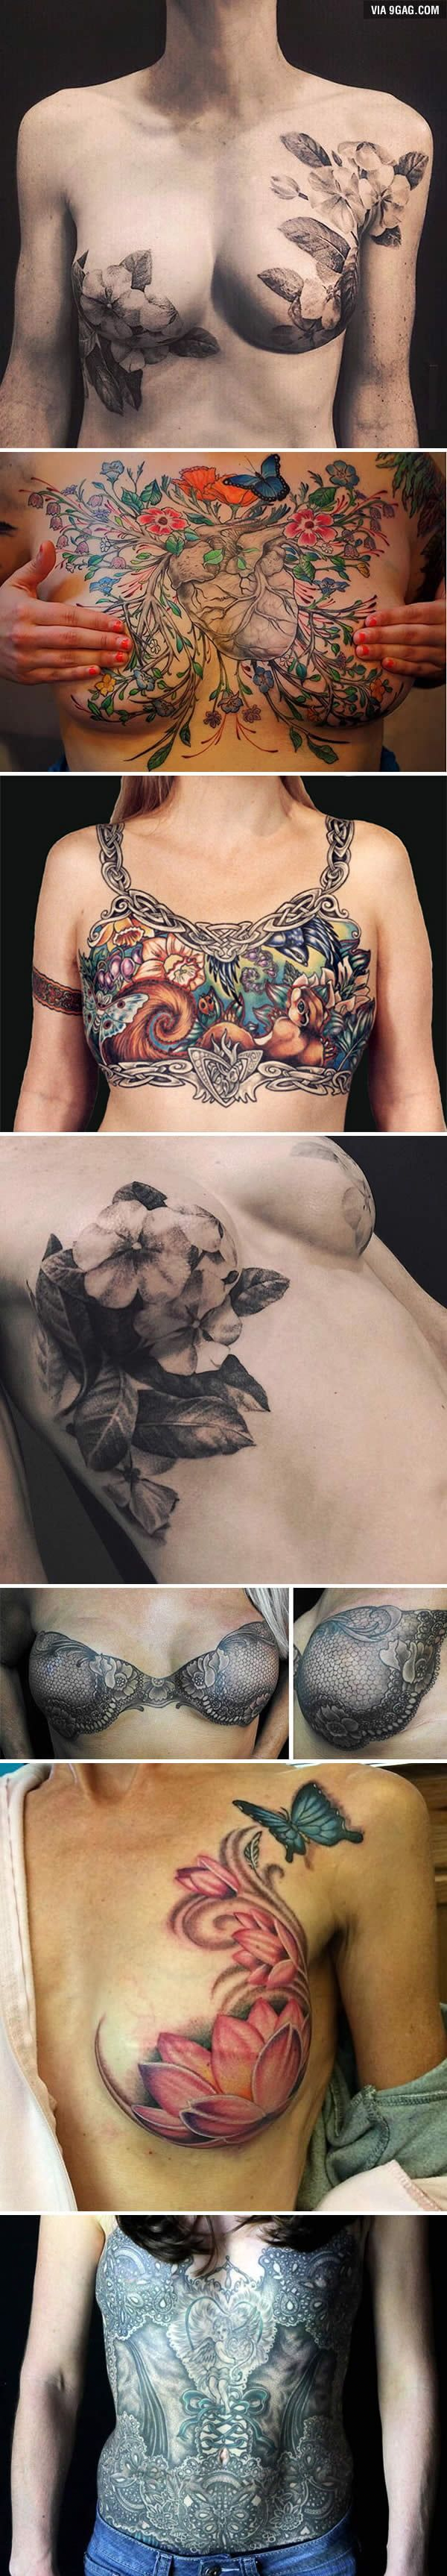 Photo of Tattoo Artists Help Cover Breast Cancer Survivors' Scars With Beautiful Tattoos